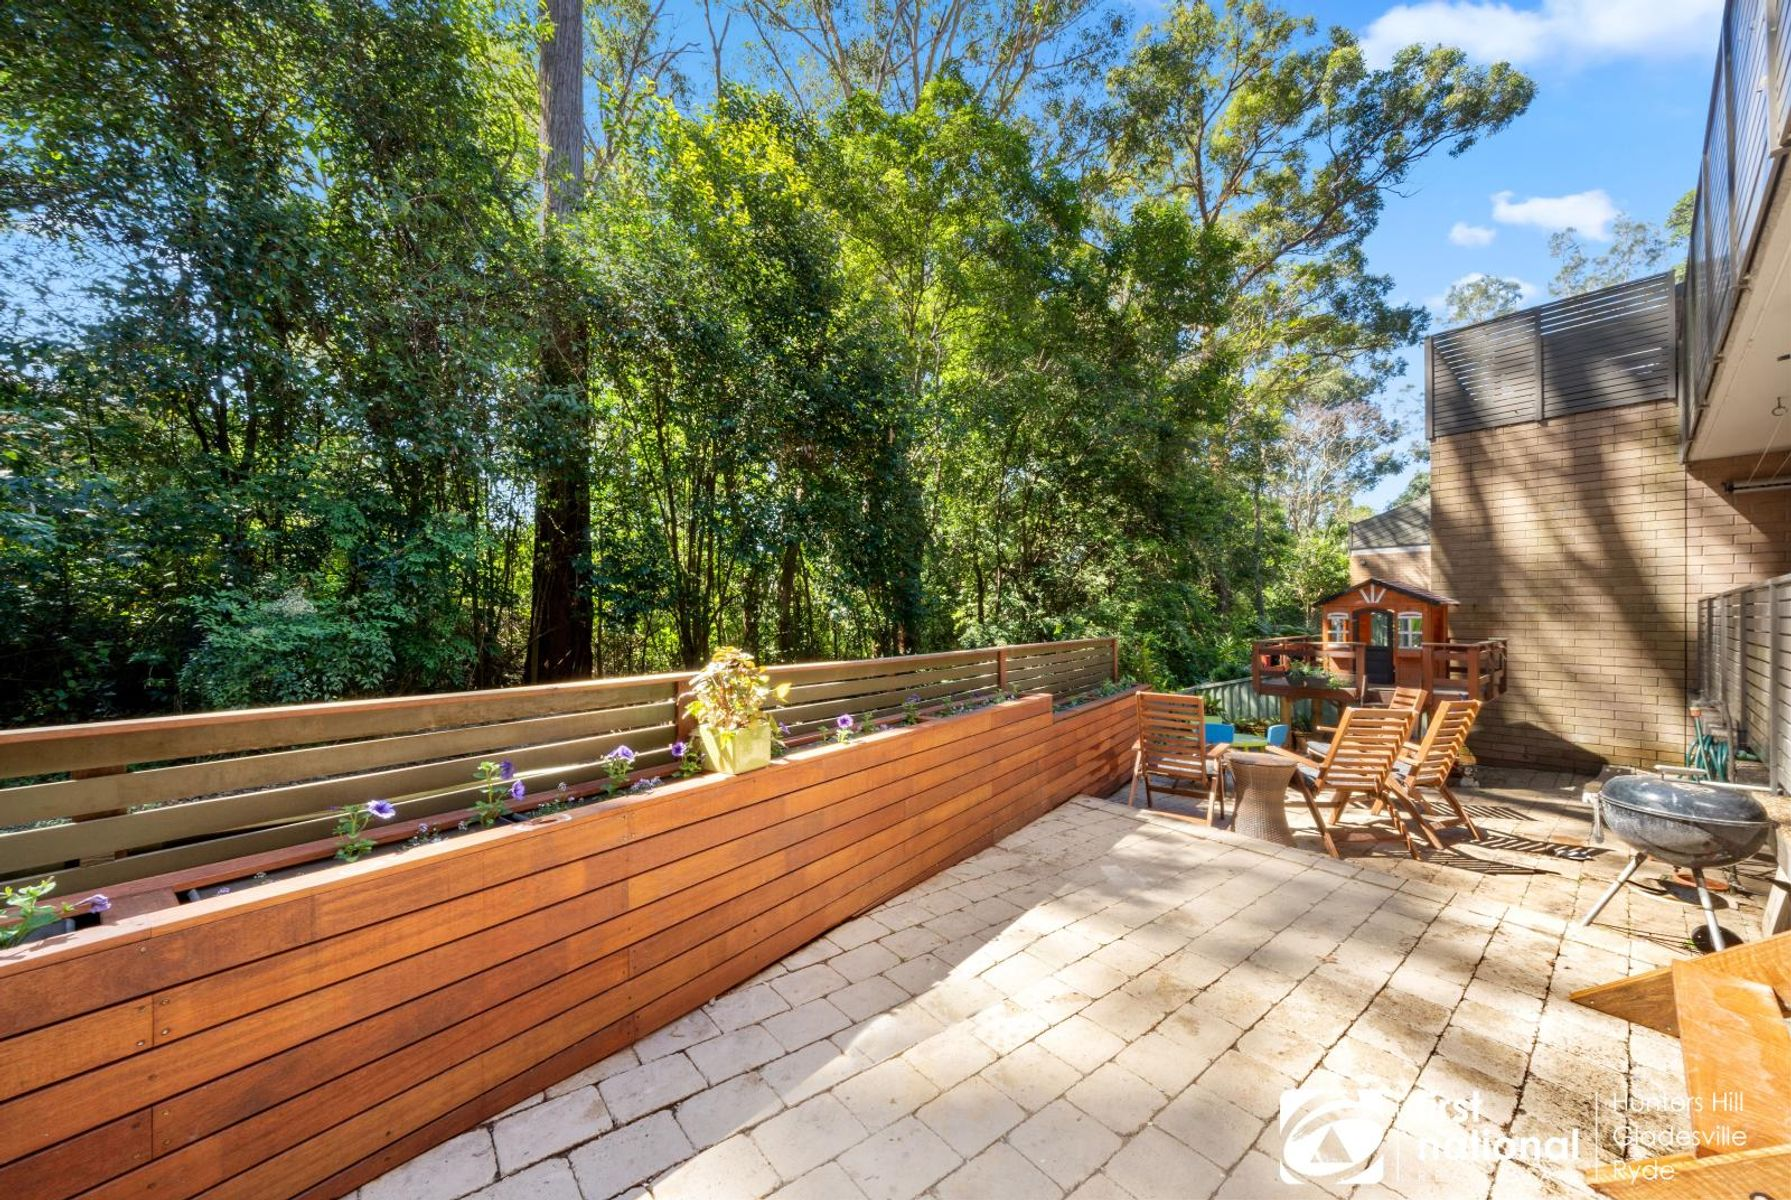 19/28-32 Fontenoy Road, Macquarie Park, NSW 2113